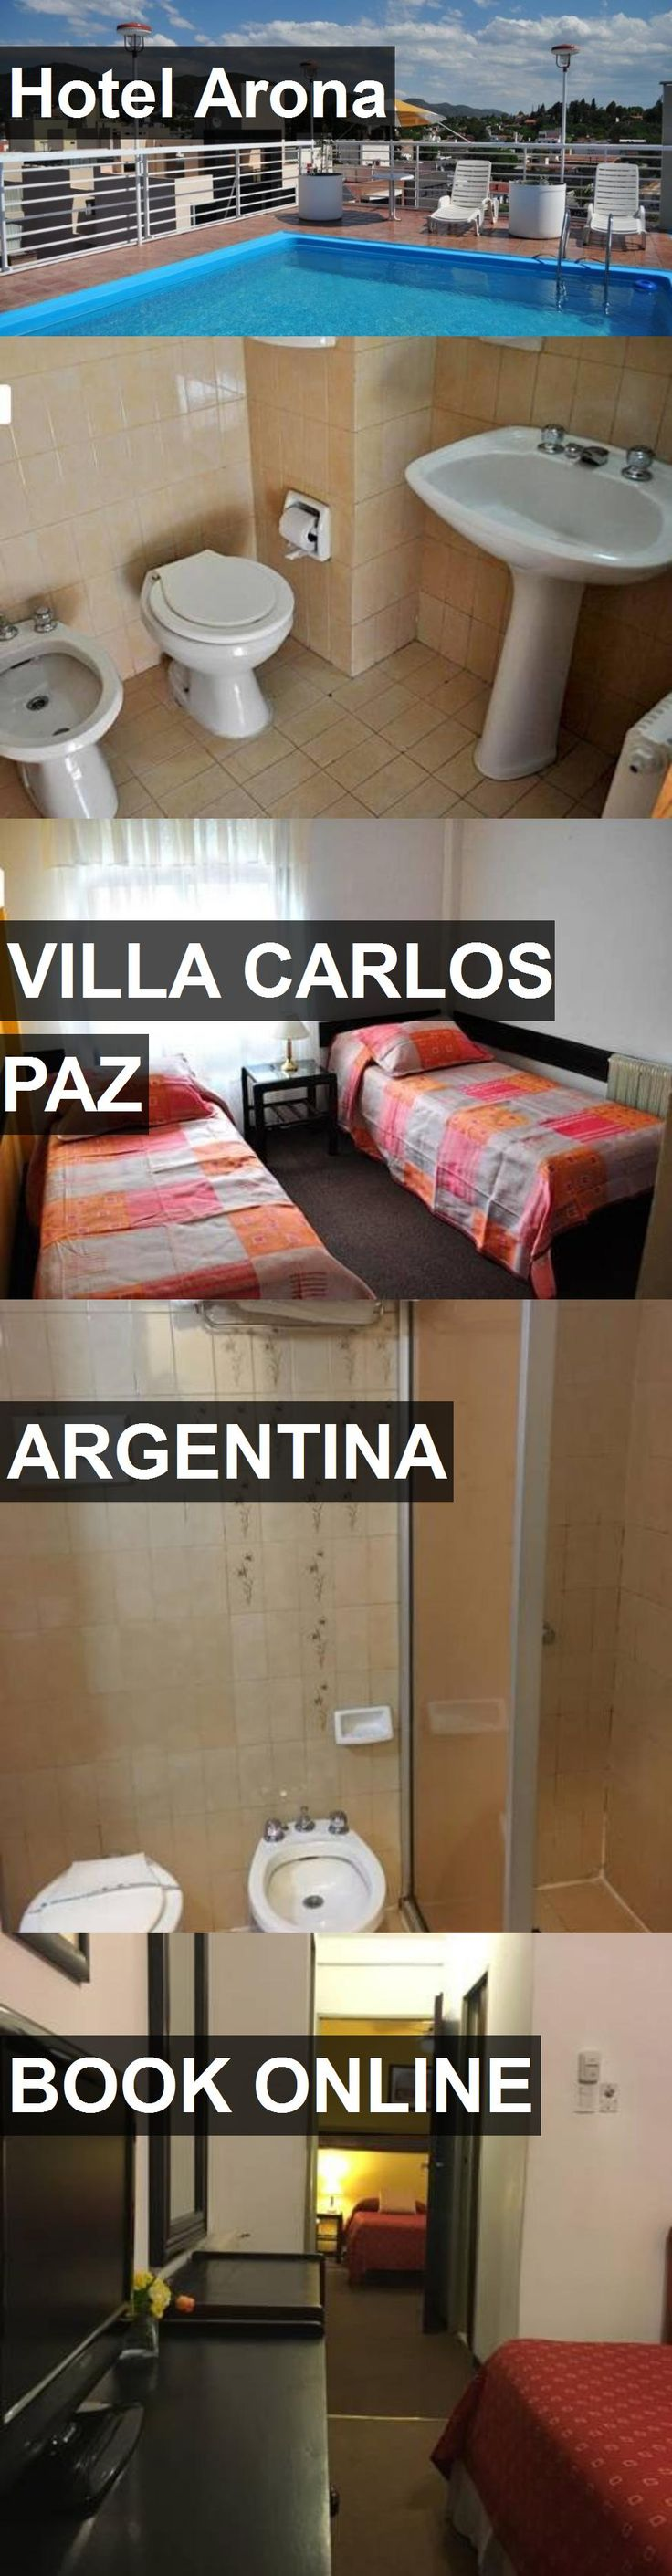 Hotel Arona in Villa Carlos Paz, Argentina. For more information, photos, reviews and best prices please follow the link. #Argentina #VillaCarlosPaz #travel #vacation #hotel